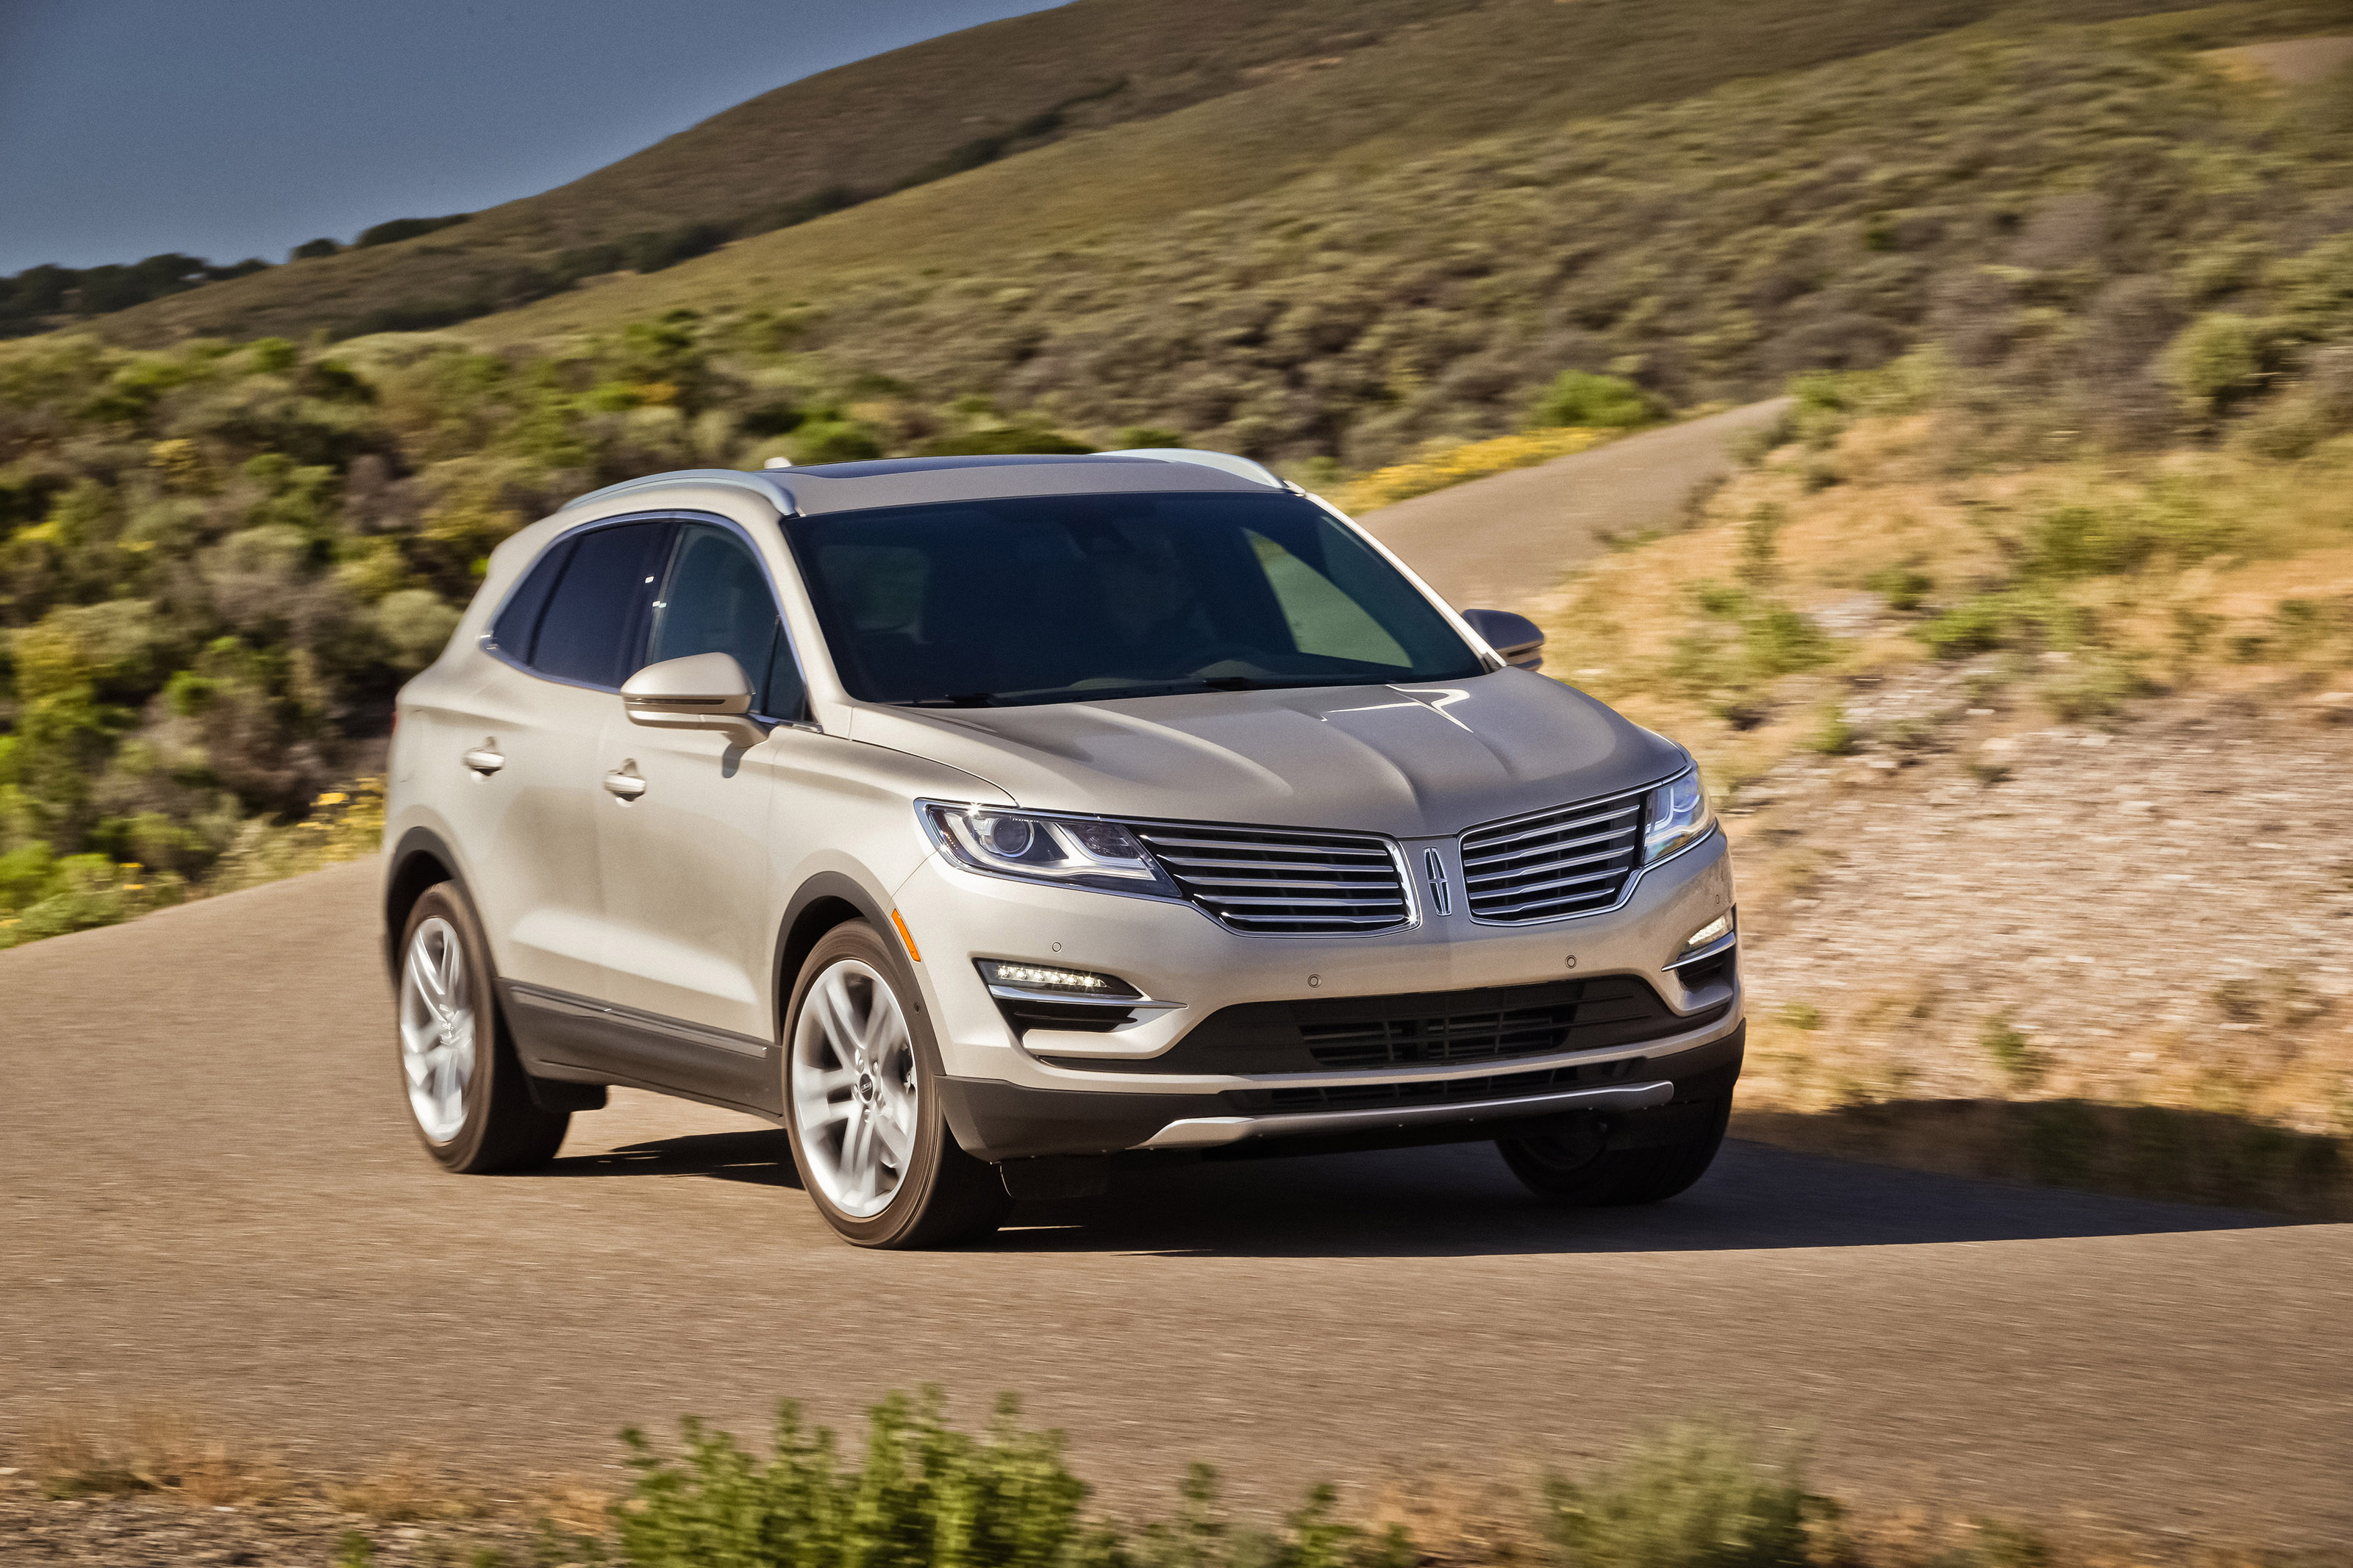 Image Gallery Lincoln Suv 2015 Models